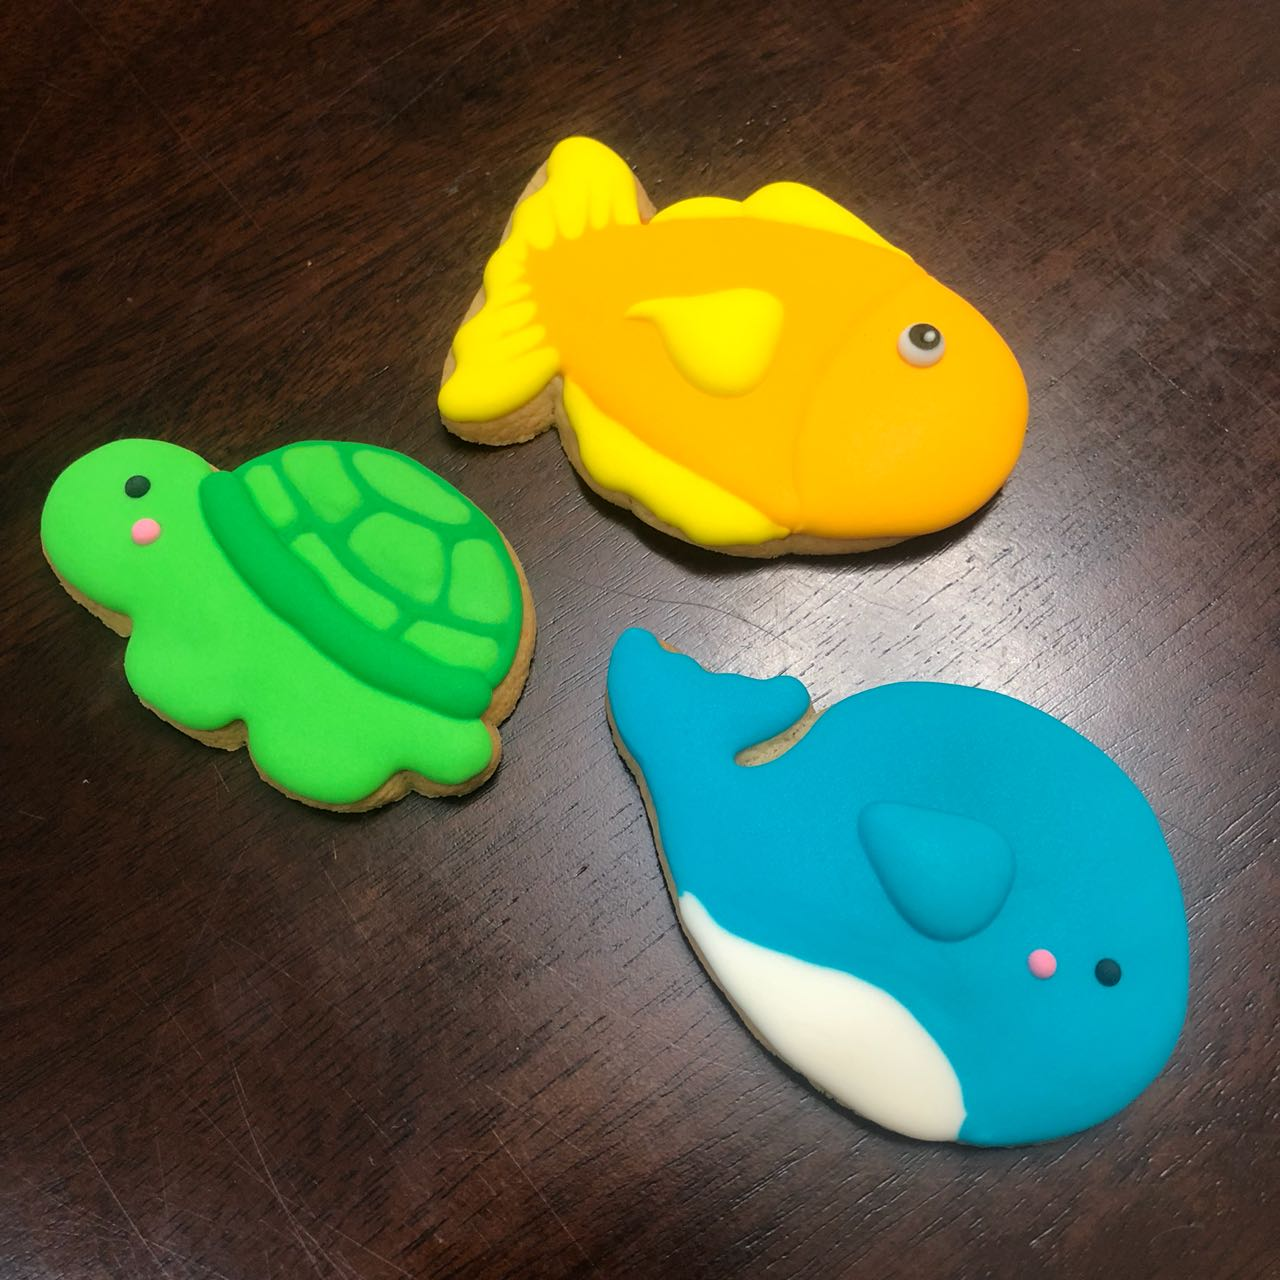 Decorated Cookies. Whale, turtle, fish. Blue, white, orange, yellow, green, pink black colors. Royal Icing Cookies.